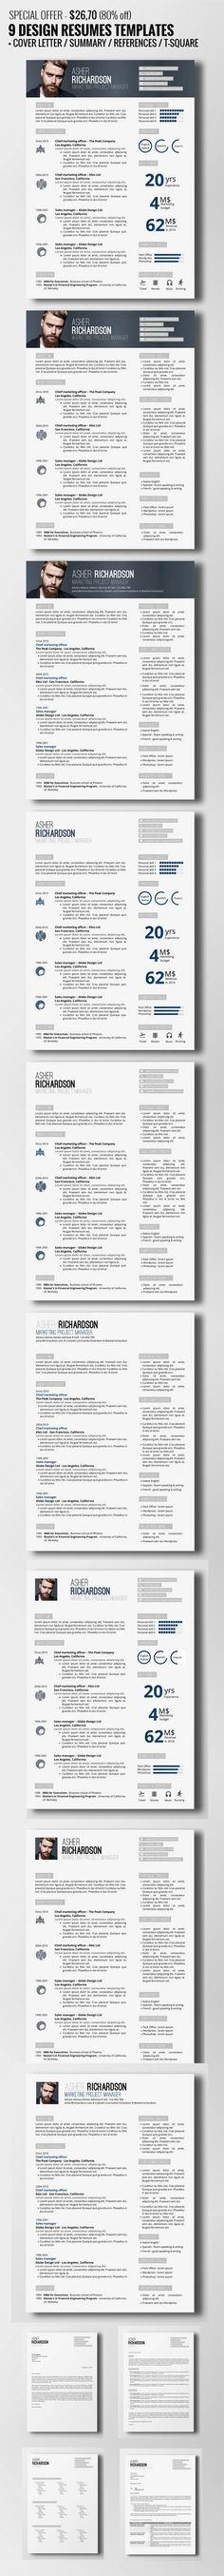 435 best Resume images on Pinterest Fonts, Model and Plants - see resumes